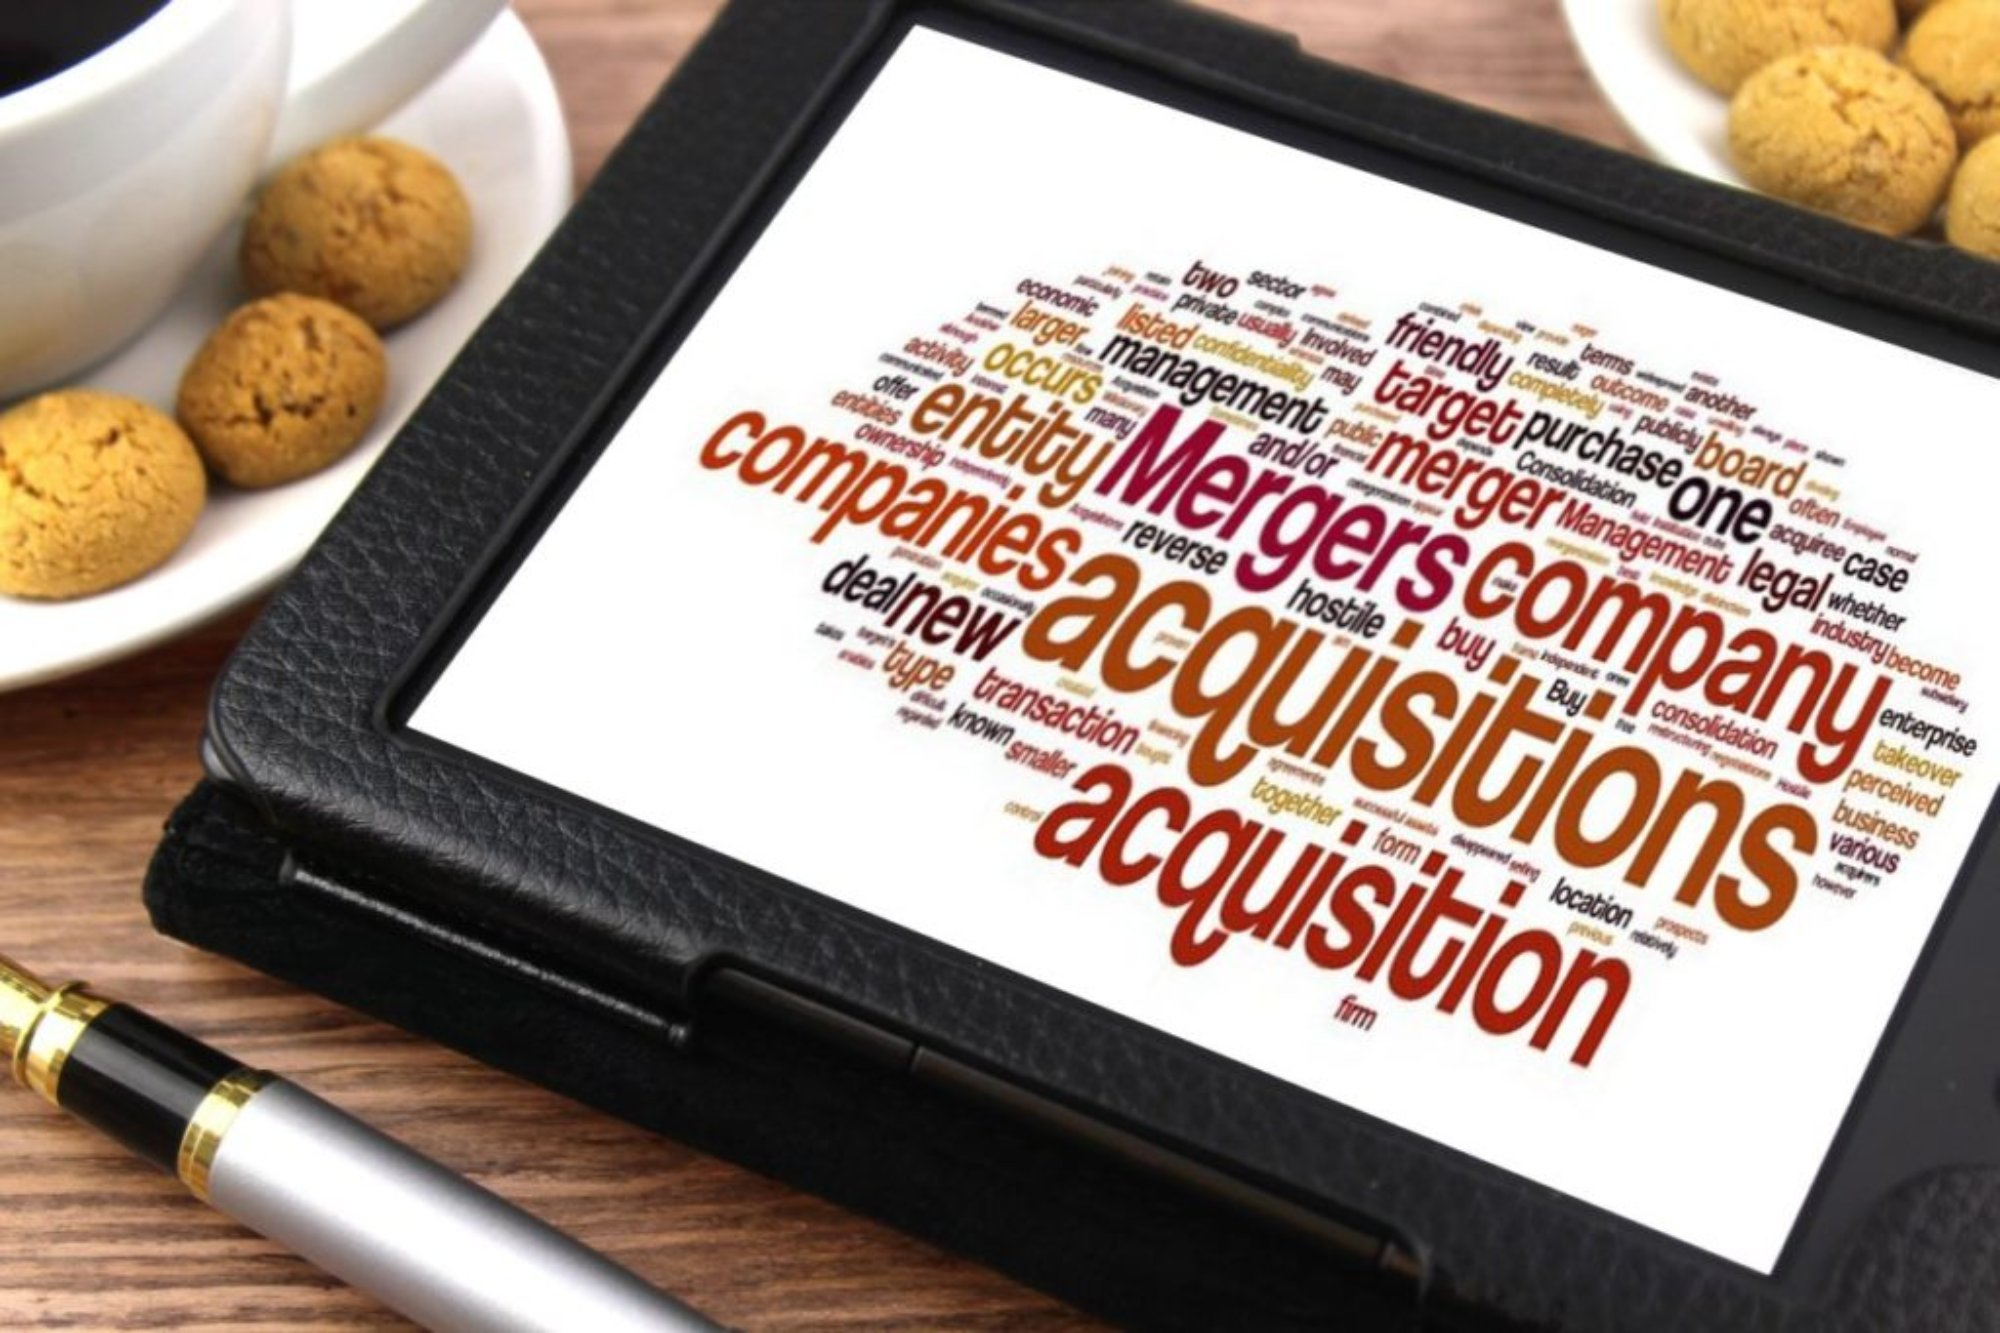 M&A, mergers & acquistions